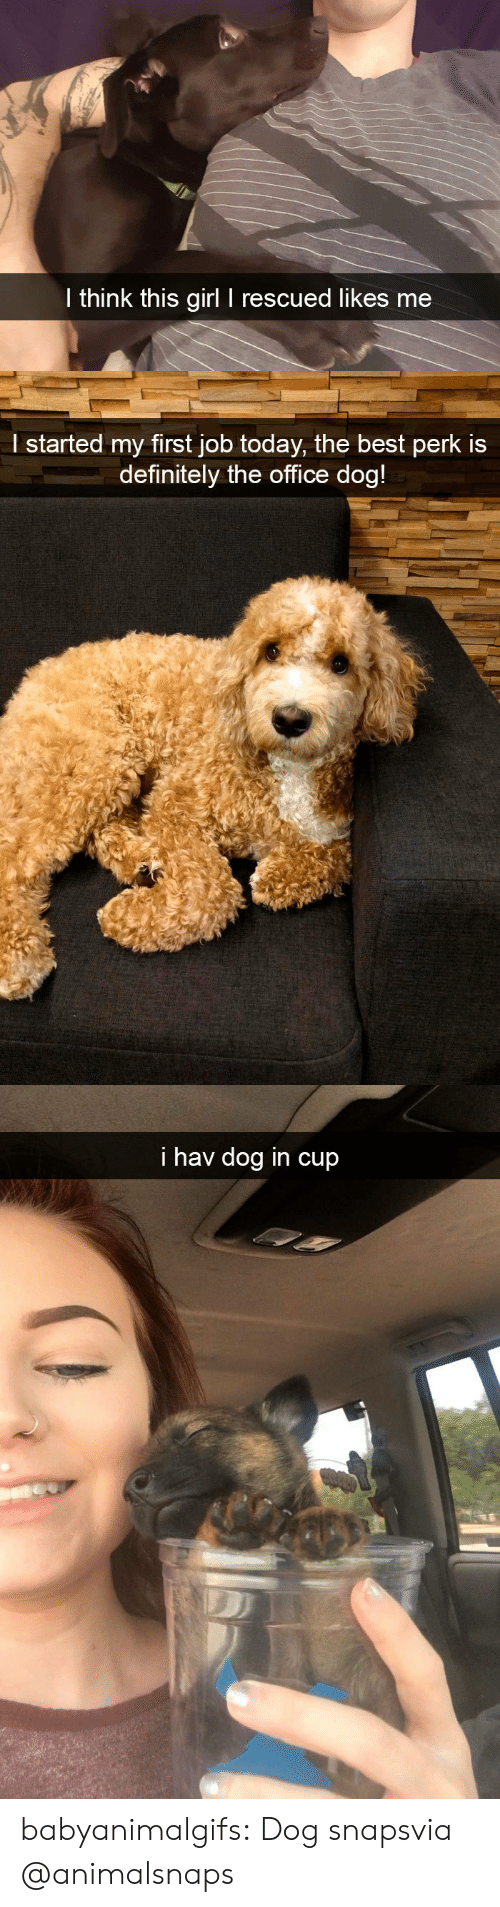 Likes Me: l think this girl I rescued likes me   l started my first job today, the best perk is  definitely the office doa   i hav dog in cup babyanimalgifs:  Dog snapsvia @animalsnaps​